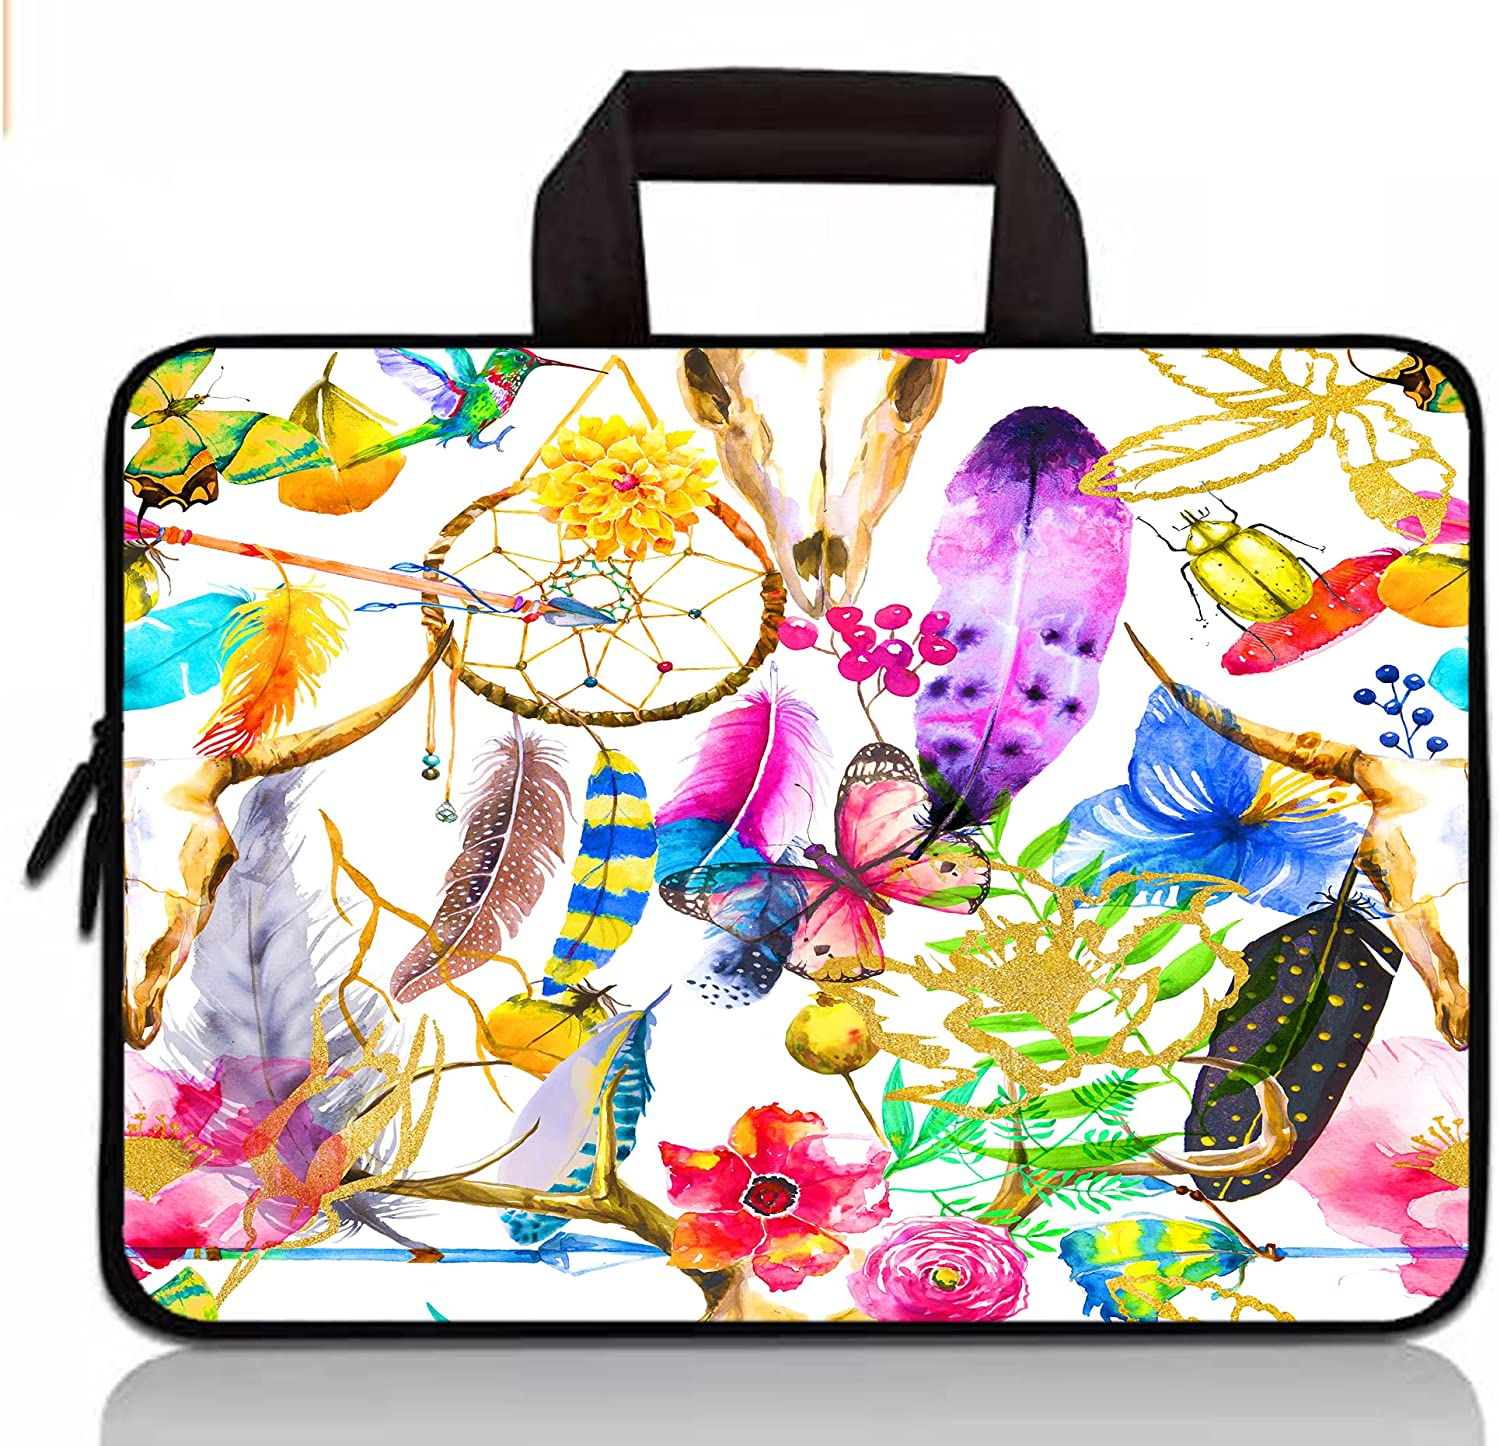 14 Inch Laptop Sleeve Case Bag for Acer Swift 3 SF314,ASUS ZenBook 14,Dell Latitude/Inspiron 14, HP Chromebook 14/HP Stream 14/Pavlilion 14/ProBook 14,Lenovo IdeaPad 3 14/Chromebook S330-Butterfly